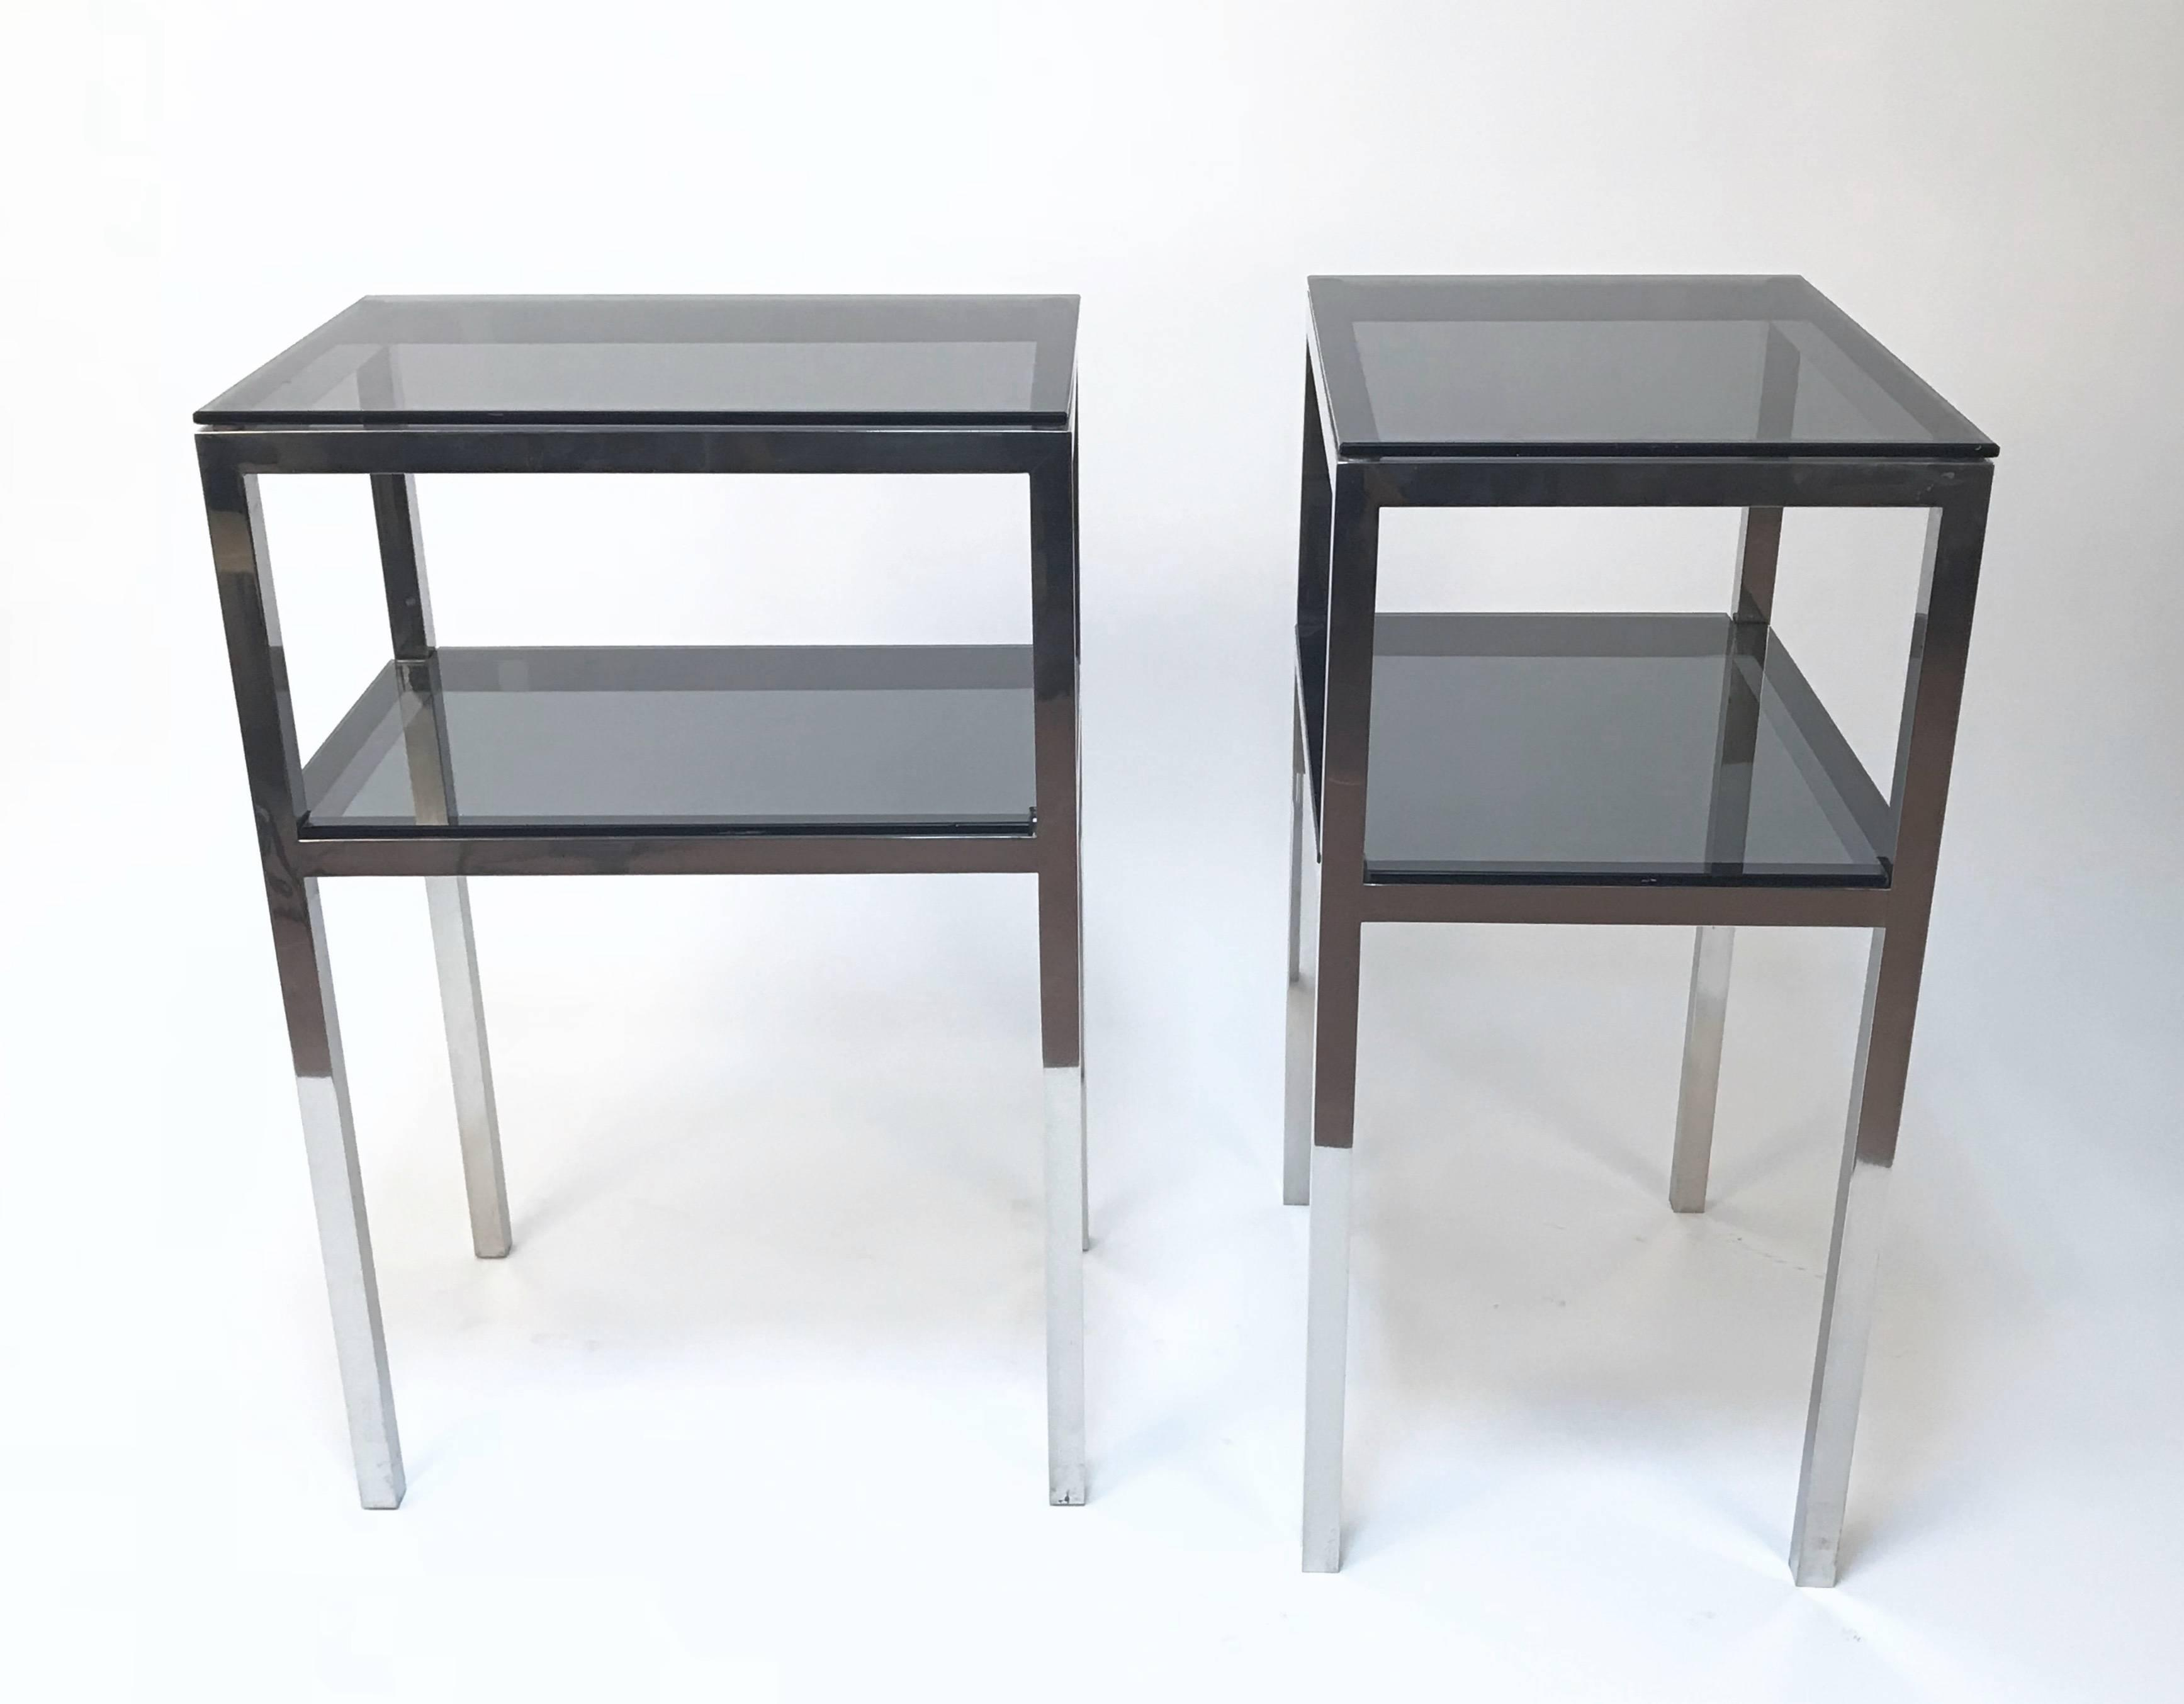 pair mid century two tiered accent tables attributed romeo img master chrome metal glass console sofa table with shelf rega for cupboard decoration purple chair party decorations